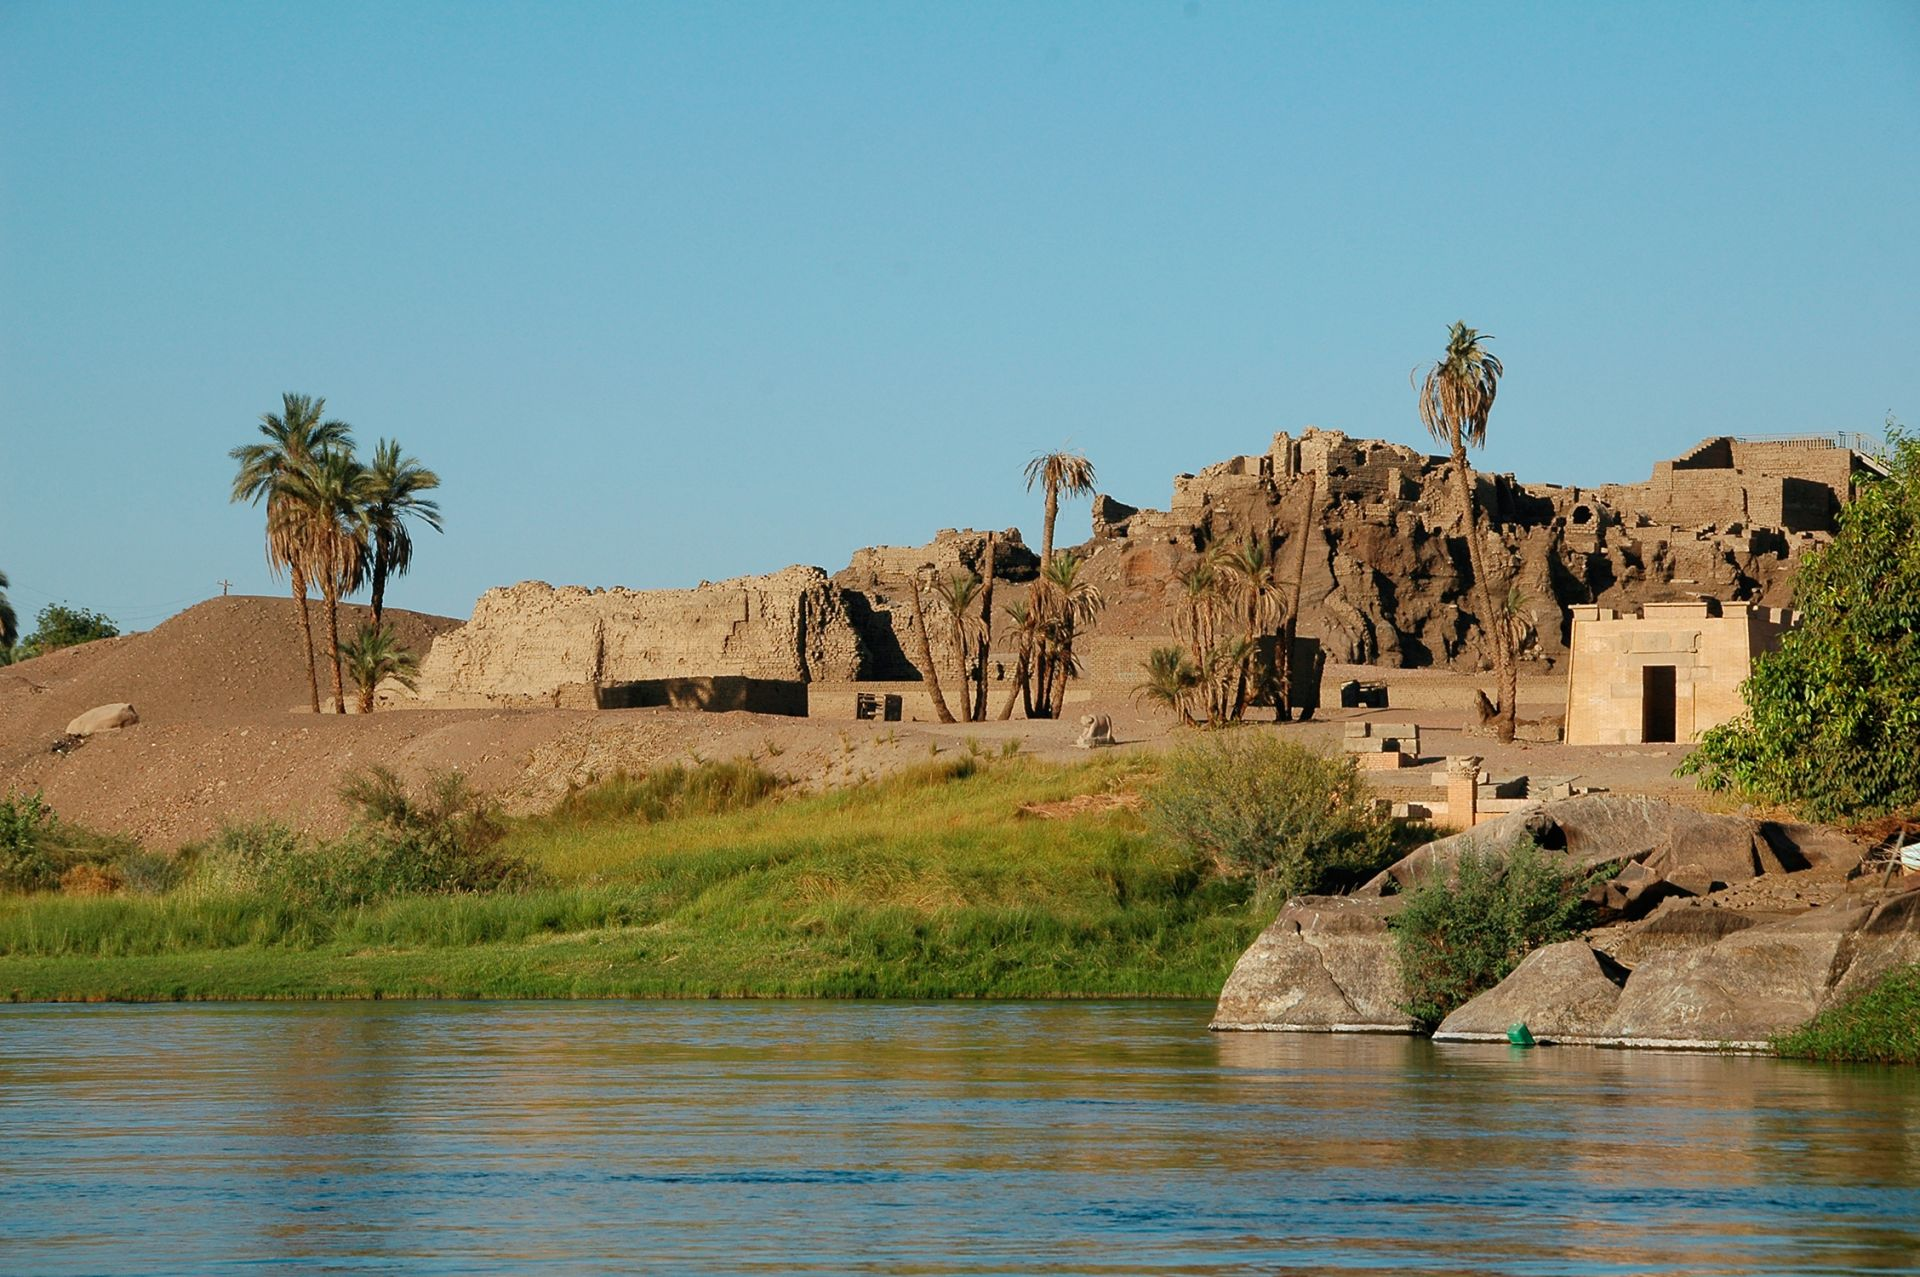 Life On The Nile | Nile Egypt | DK Find Out